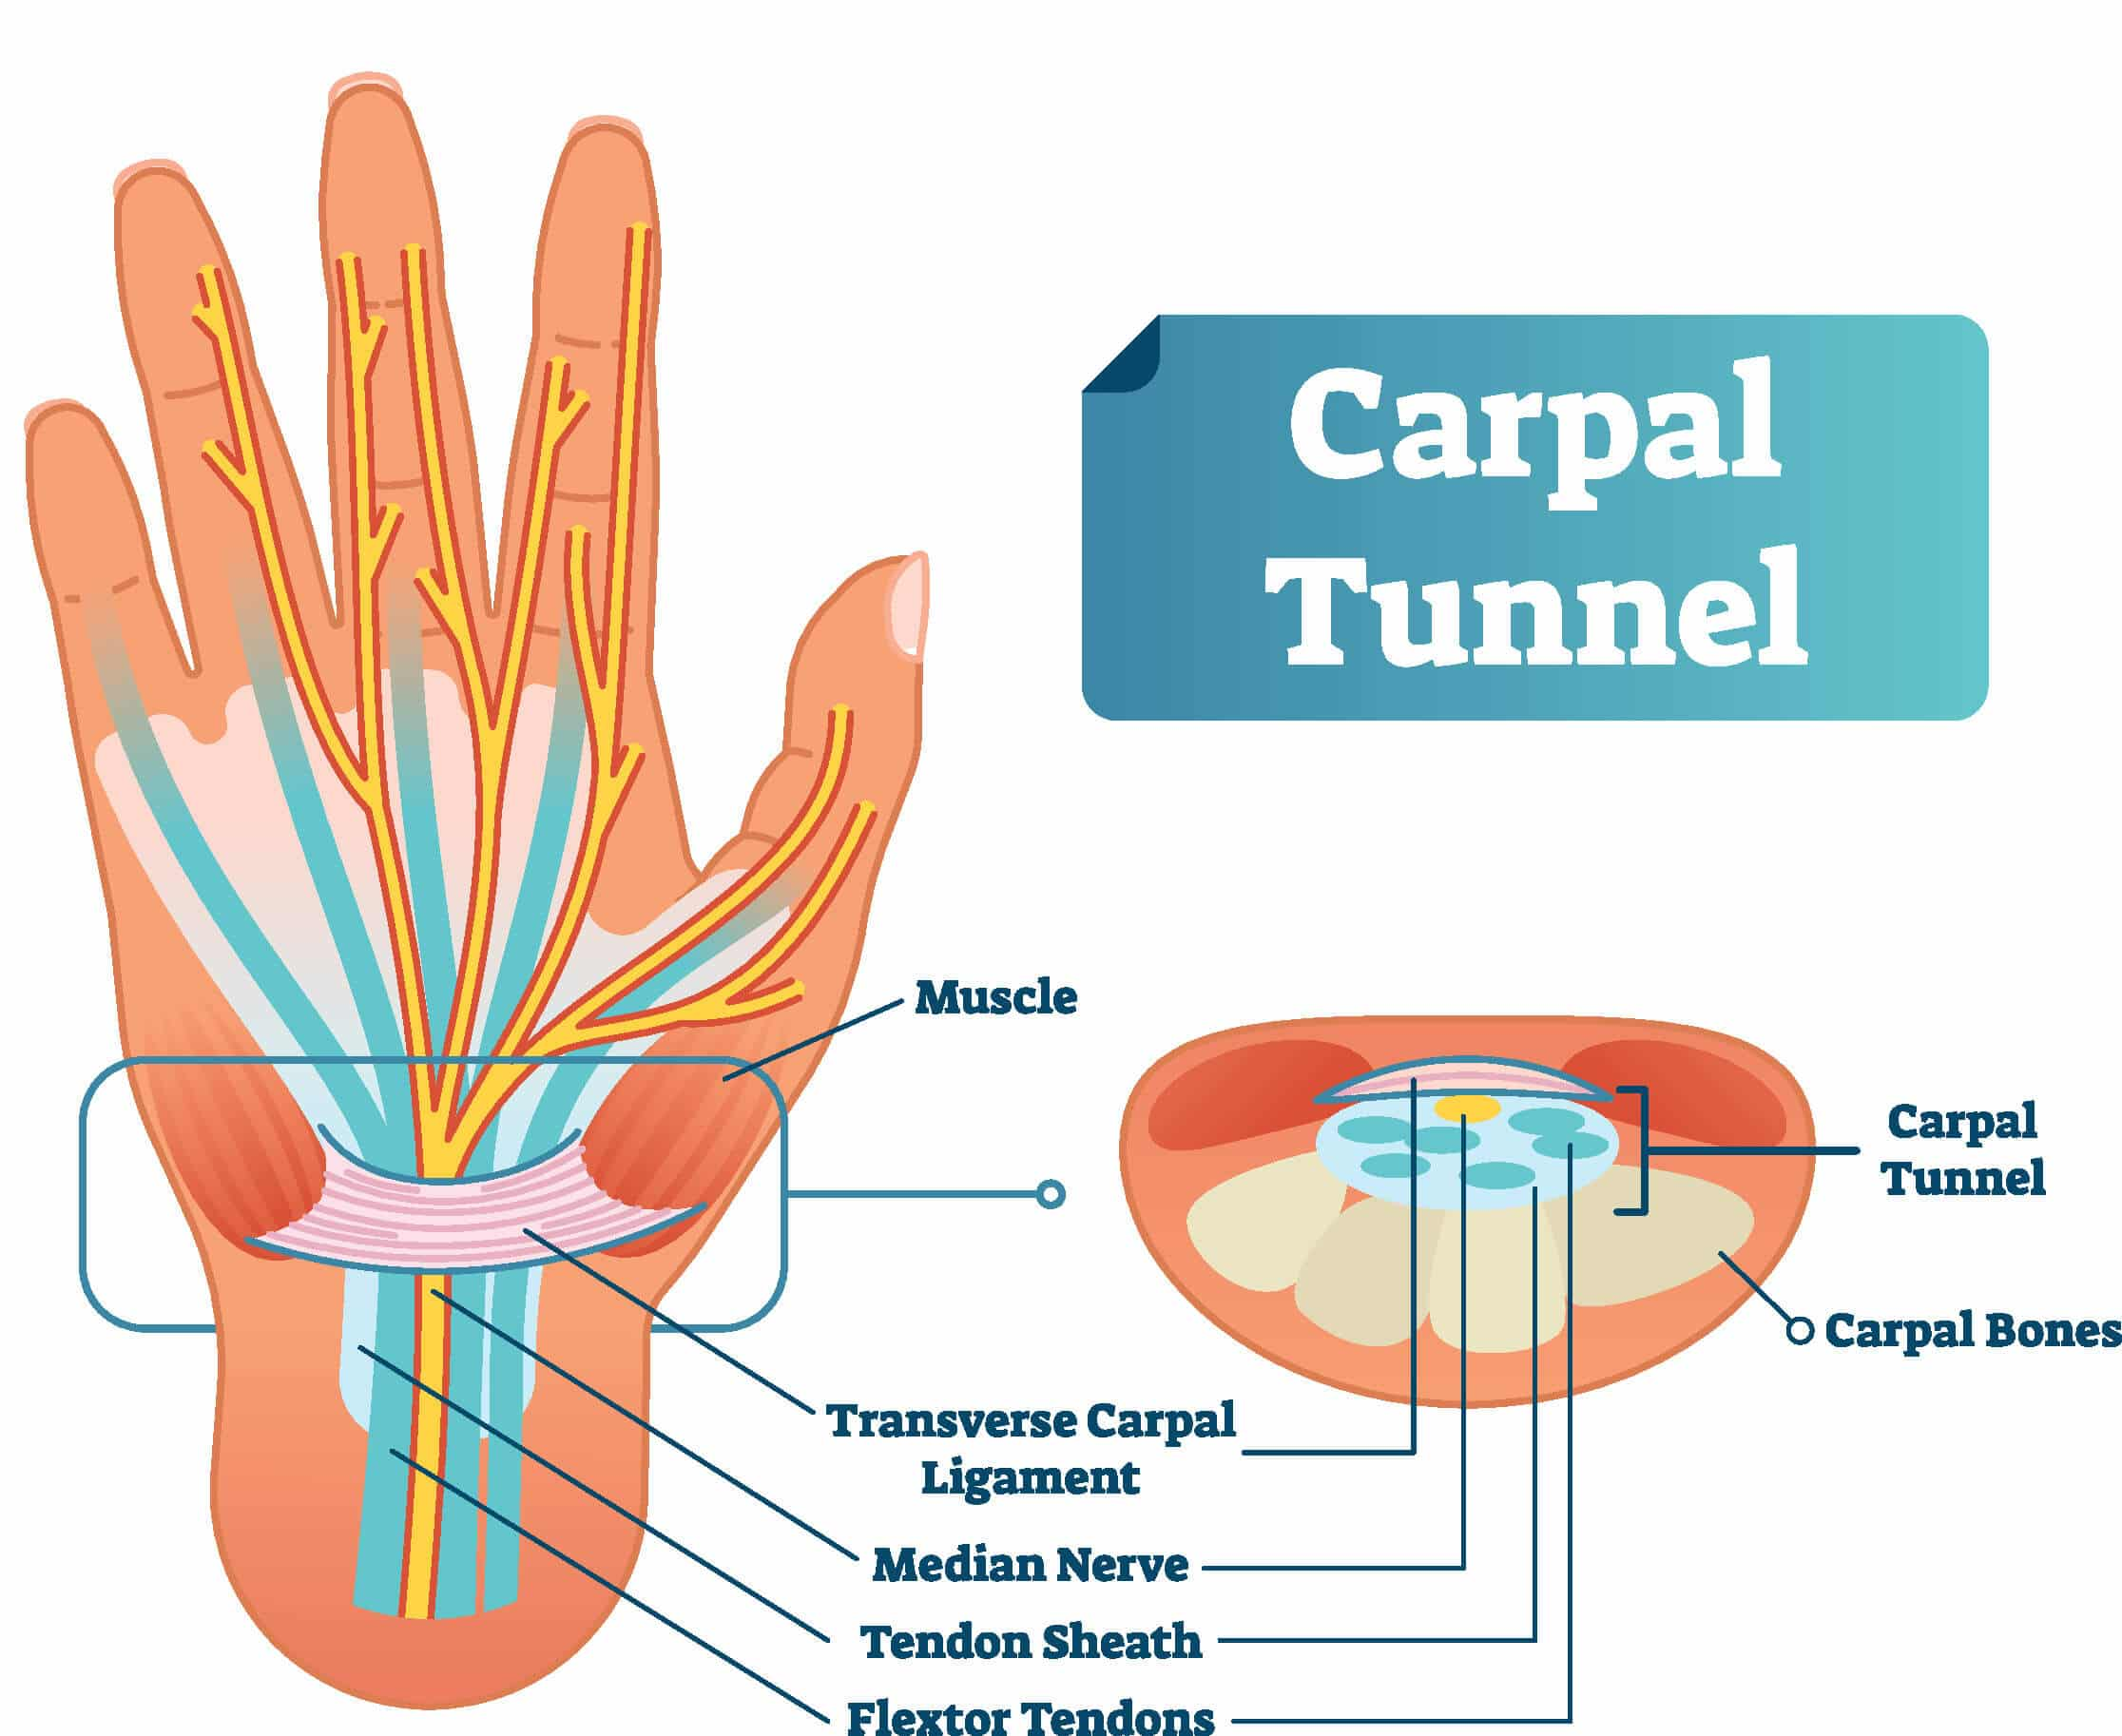 Image of the wrist and carpal tunnel